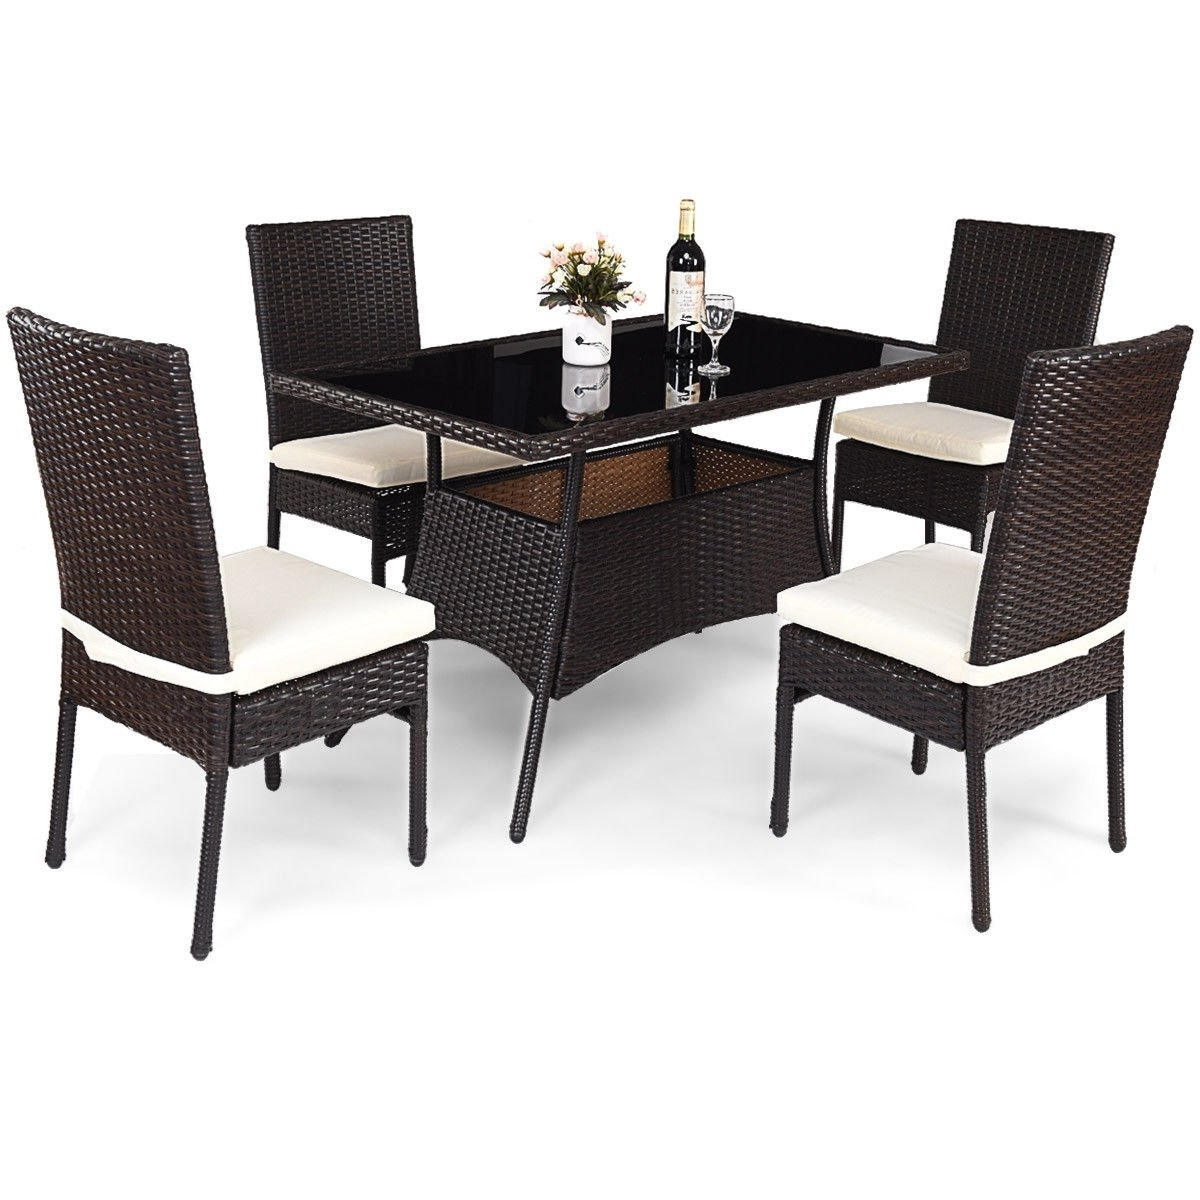 Rattan Dining Tables Intended For Most Popular Shop Costway 5 Piece Outdoor Patio Furniture Rattan Dining Table (View 16 of 25)